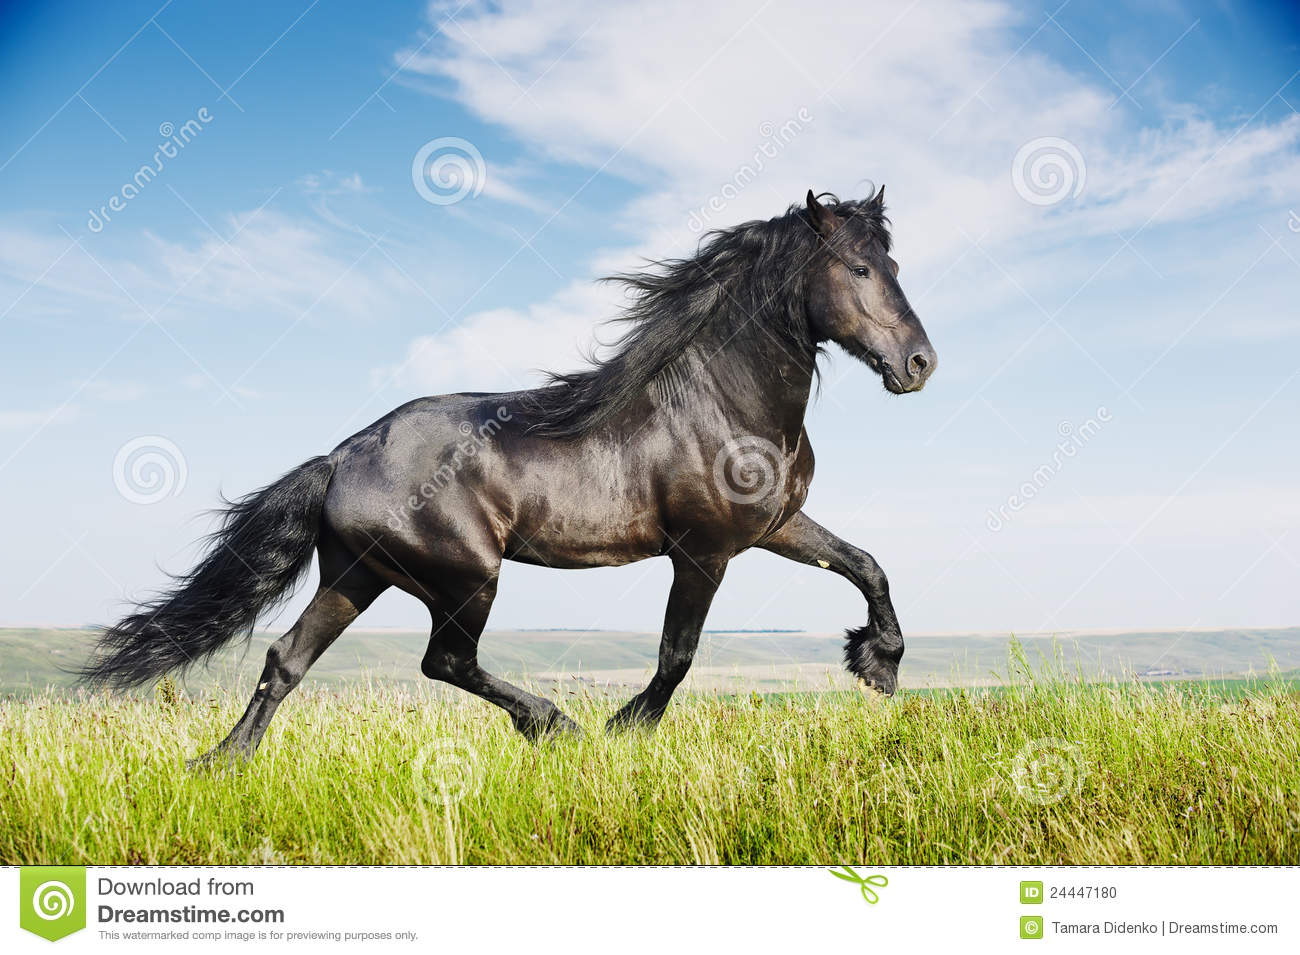 Beautiful Black Horse Running Trot Stock Photo Image Of Equestrian Blue 24447180